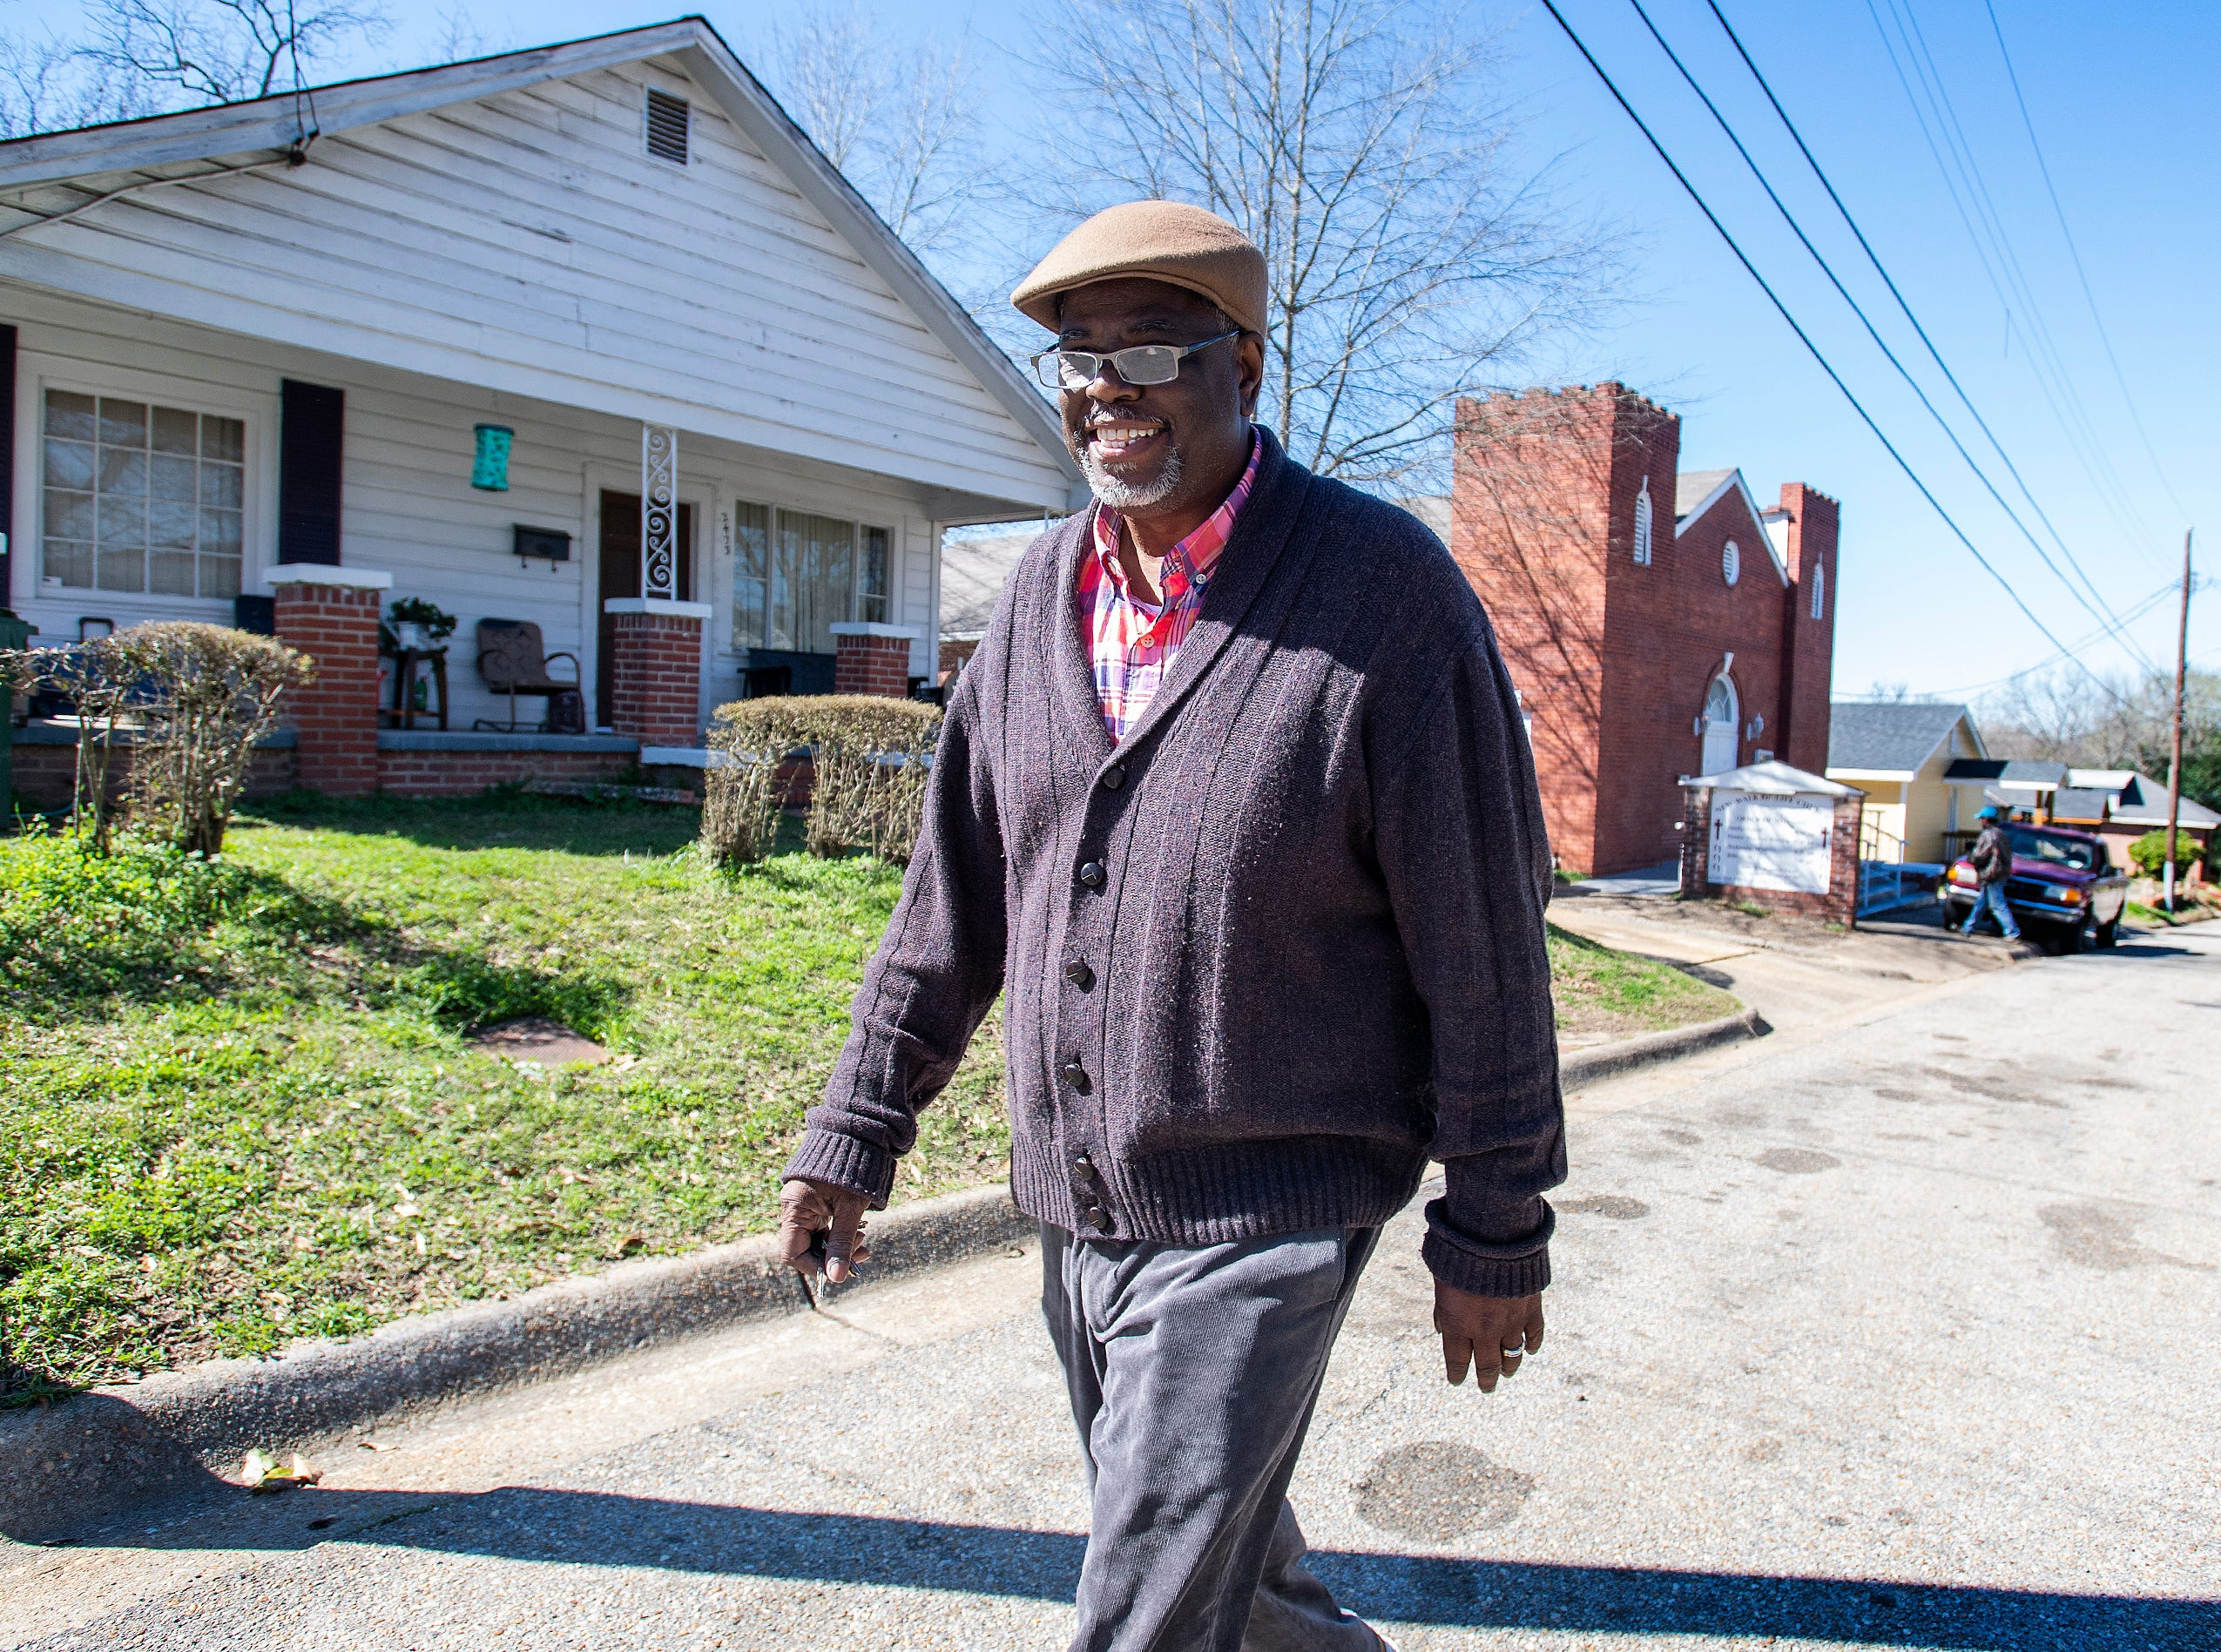 Ken Austin, executive director of the Mercy House and pastor at New Walk of Life Church, walks between his church and Mercy House in Montgomery, Ala., on Wednesday February 13, 2019.